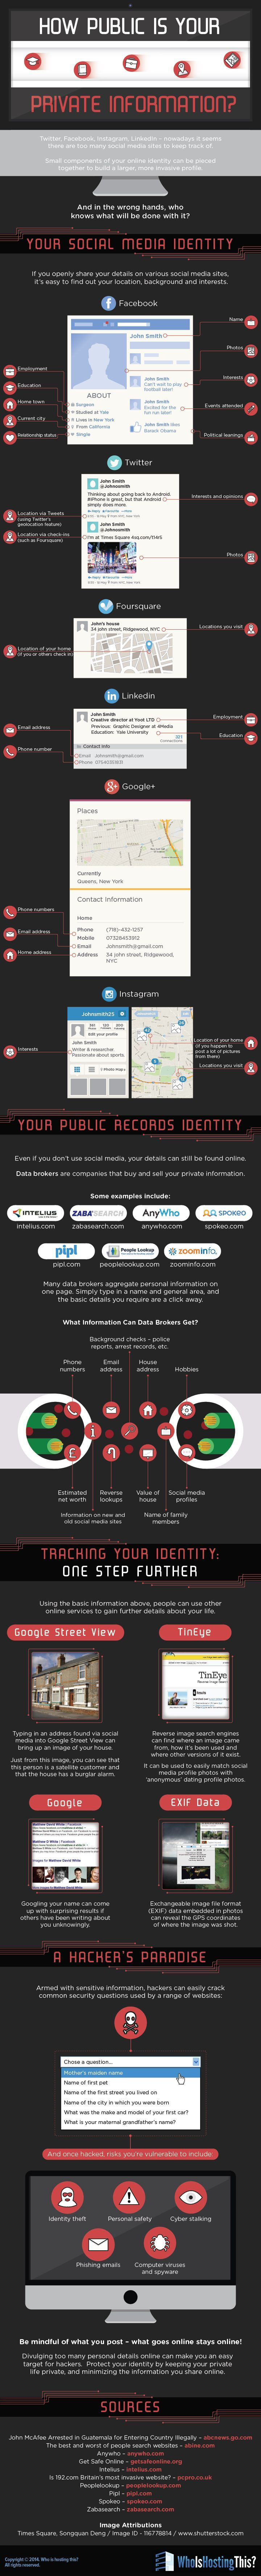 How public is your private information? - #infographic #socialmedia